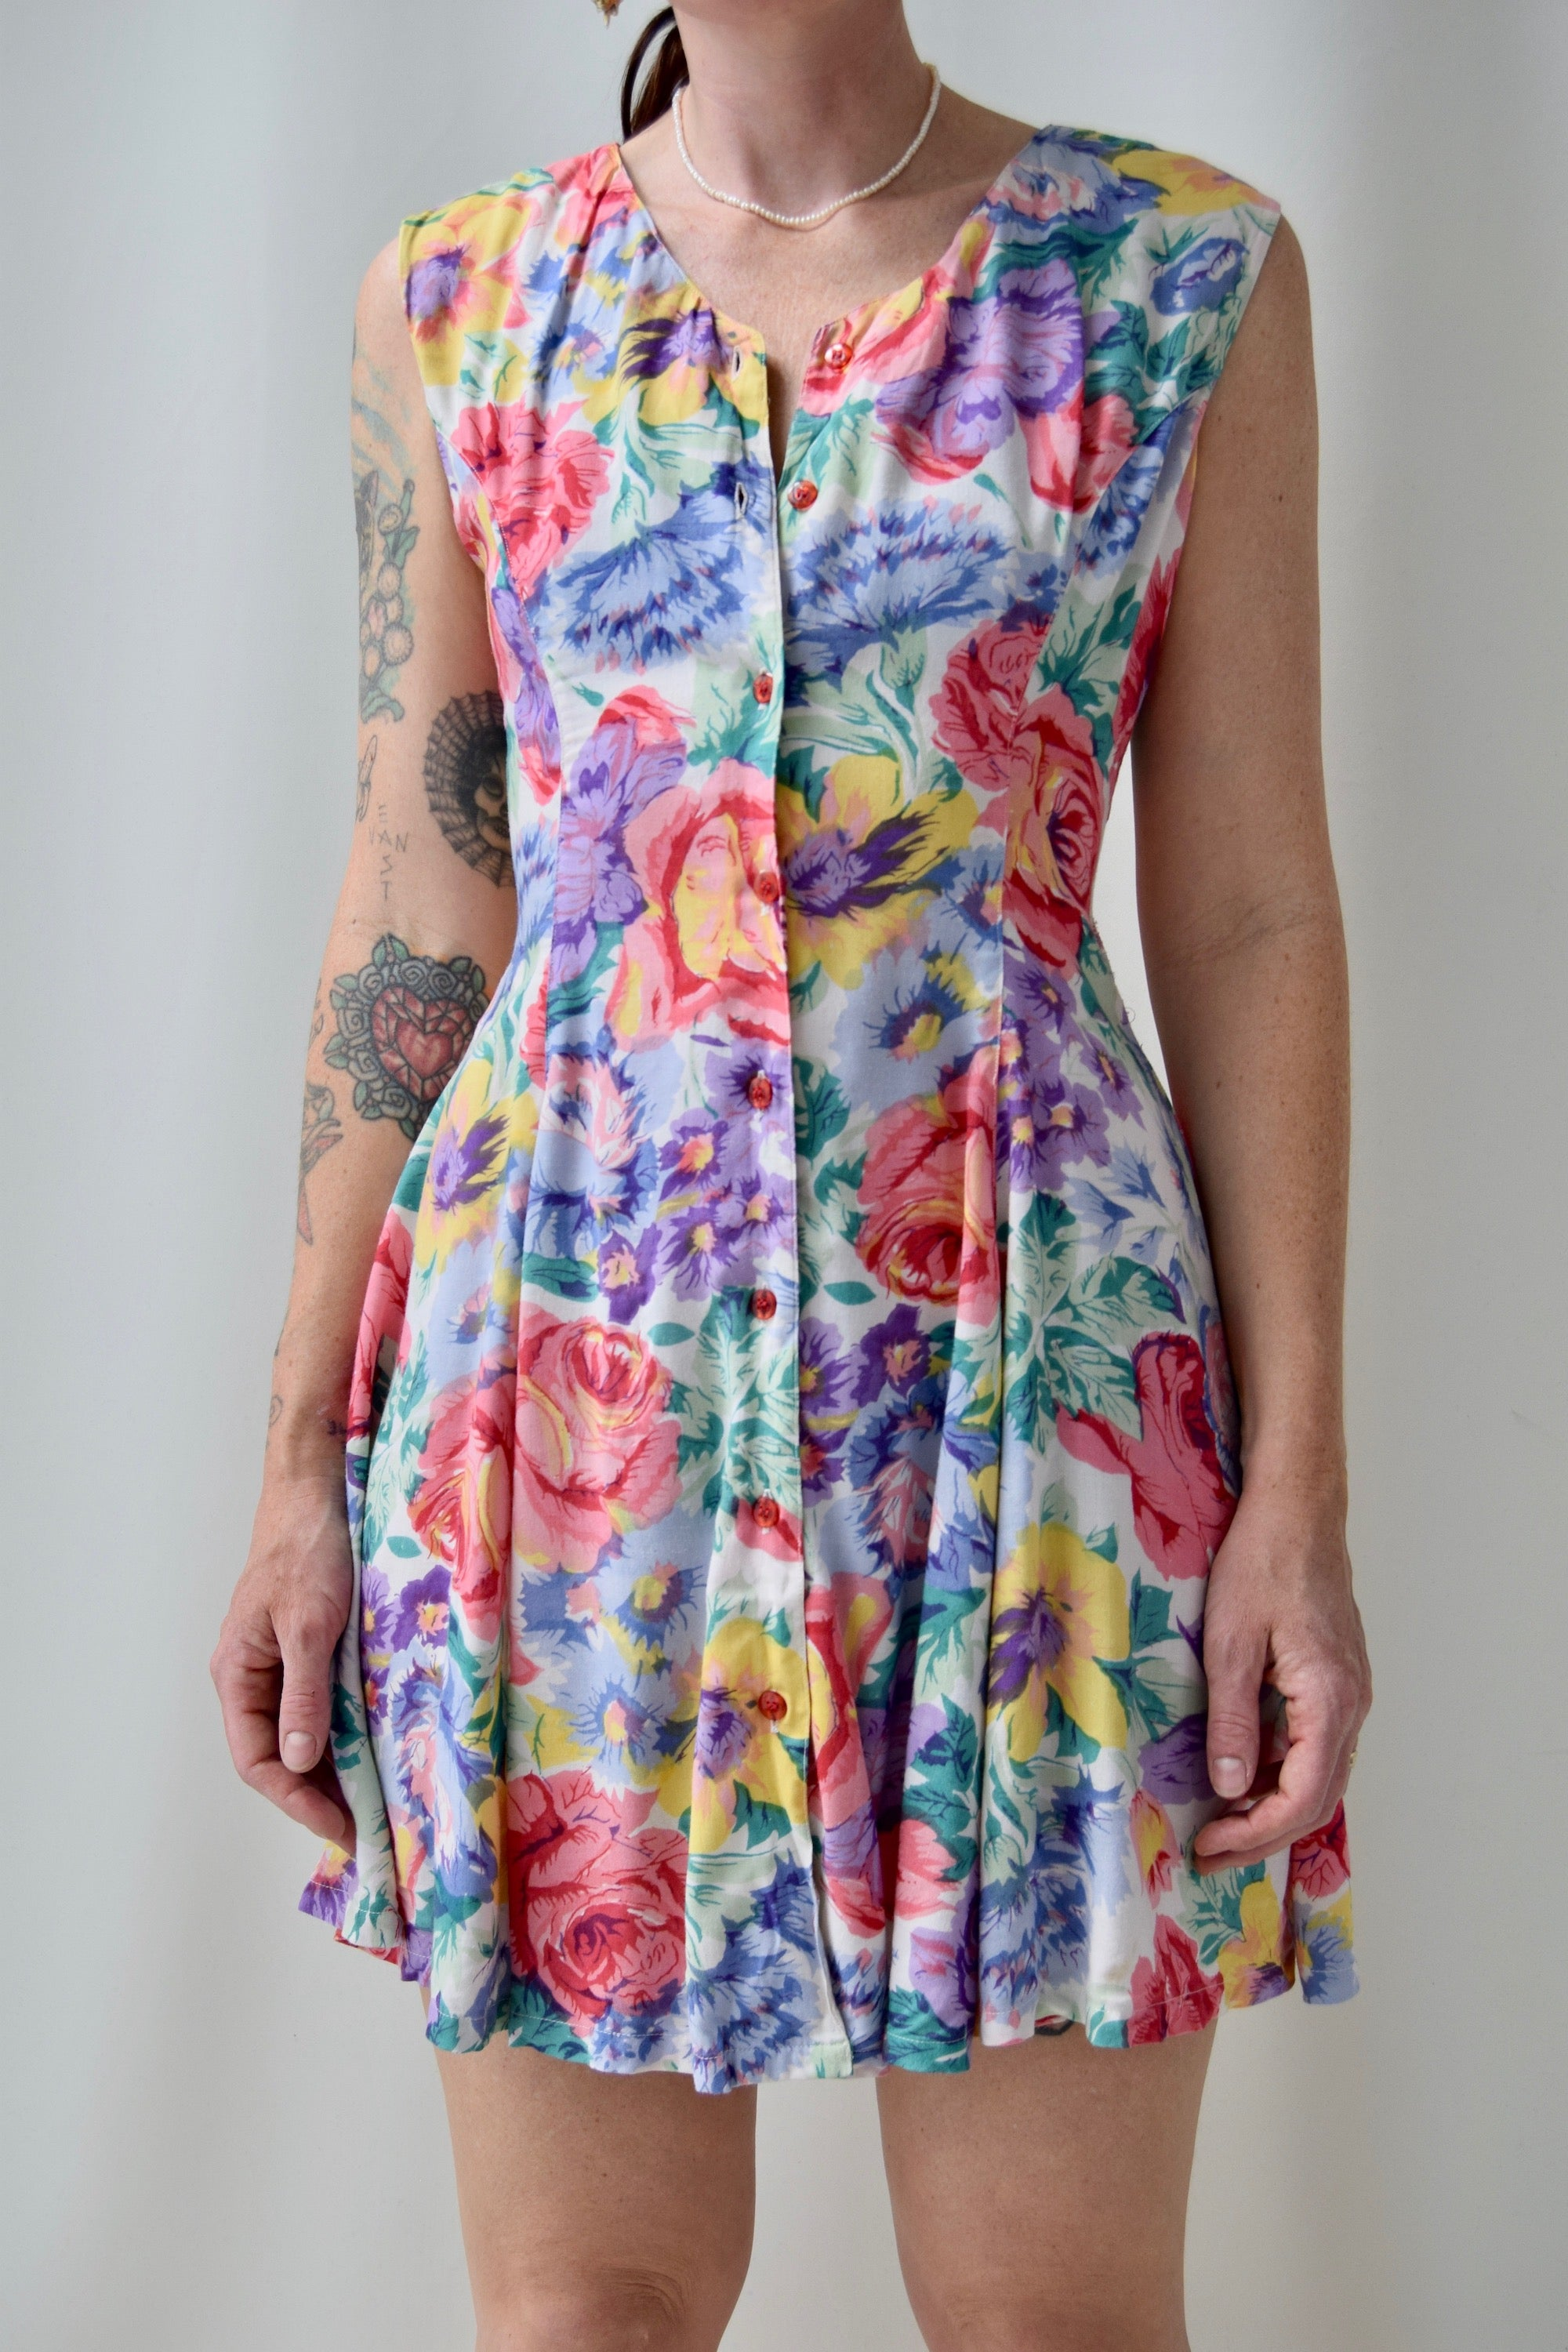 Floral Daiquiri Dress